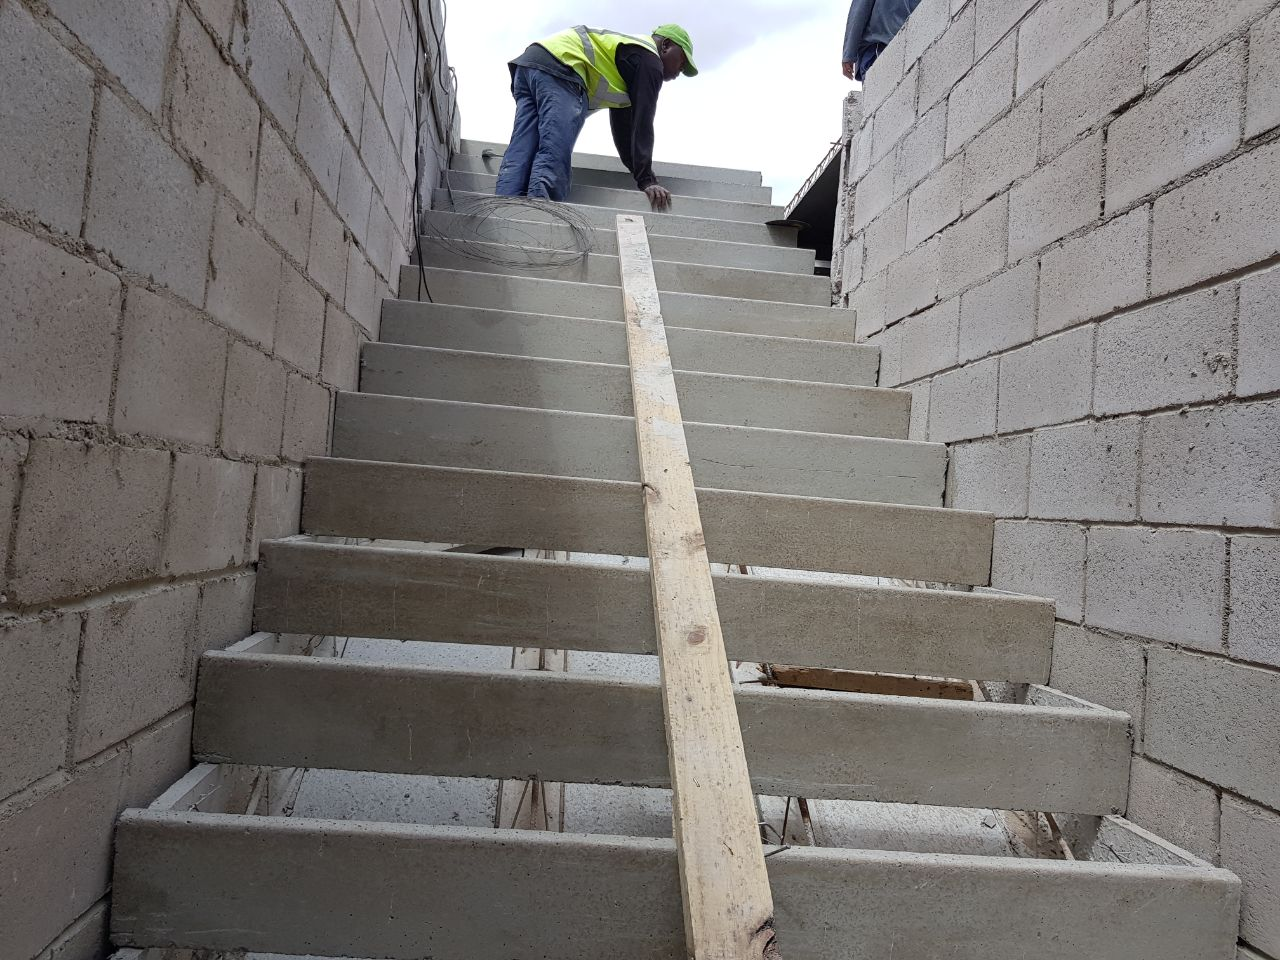 Cobute precast shutters for stairs and risers in position before installation.